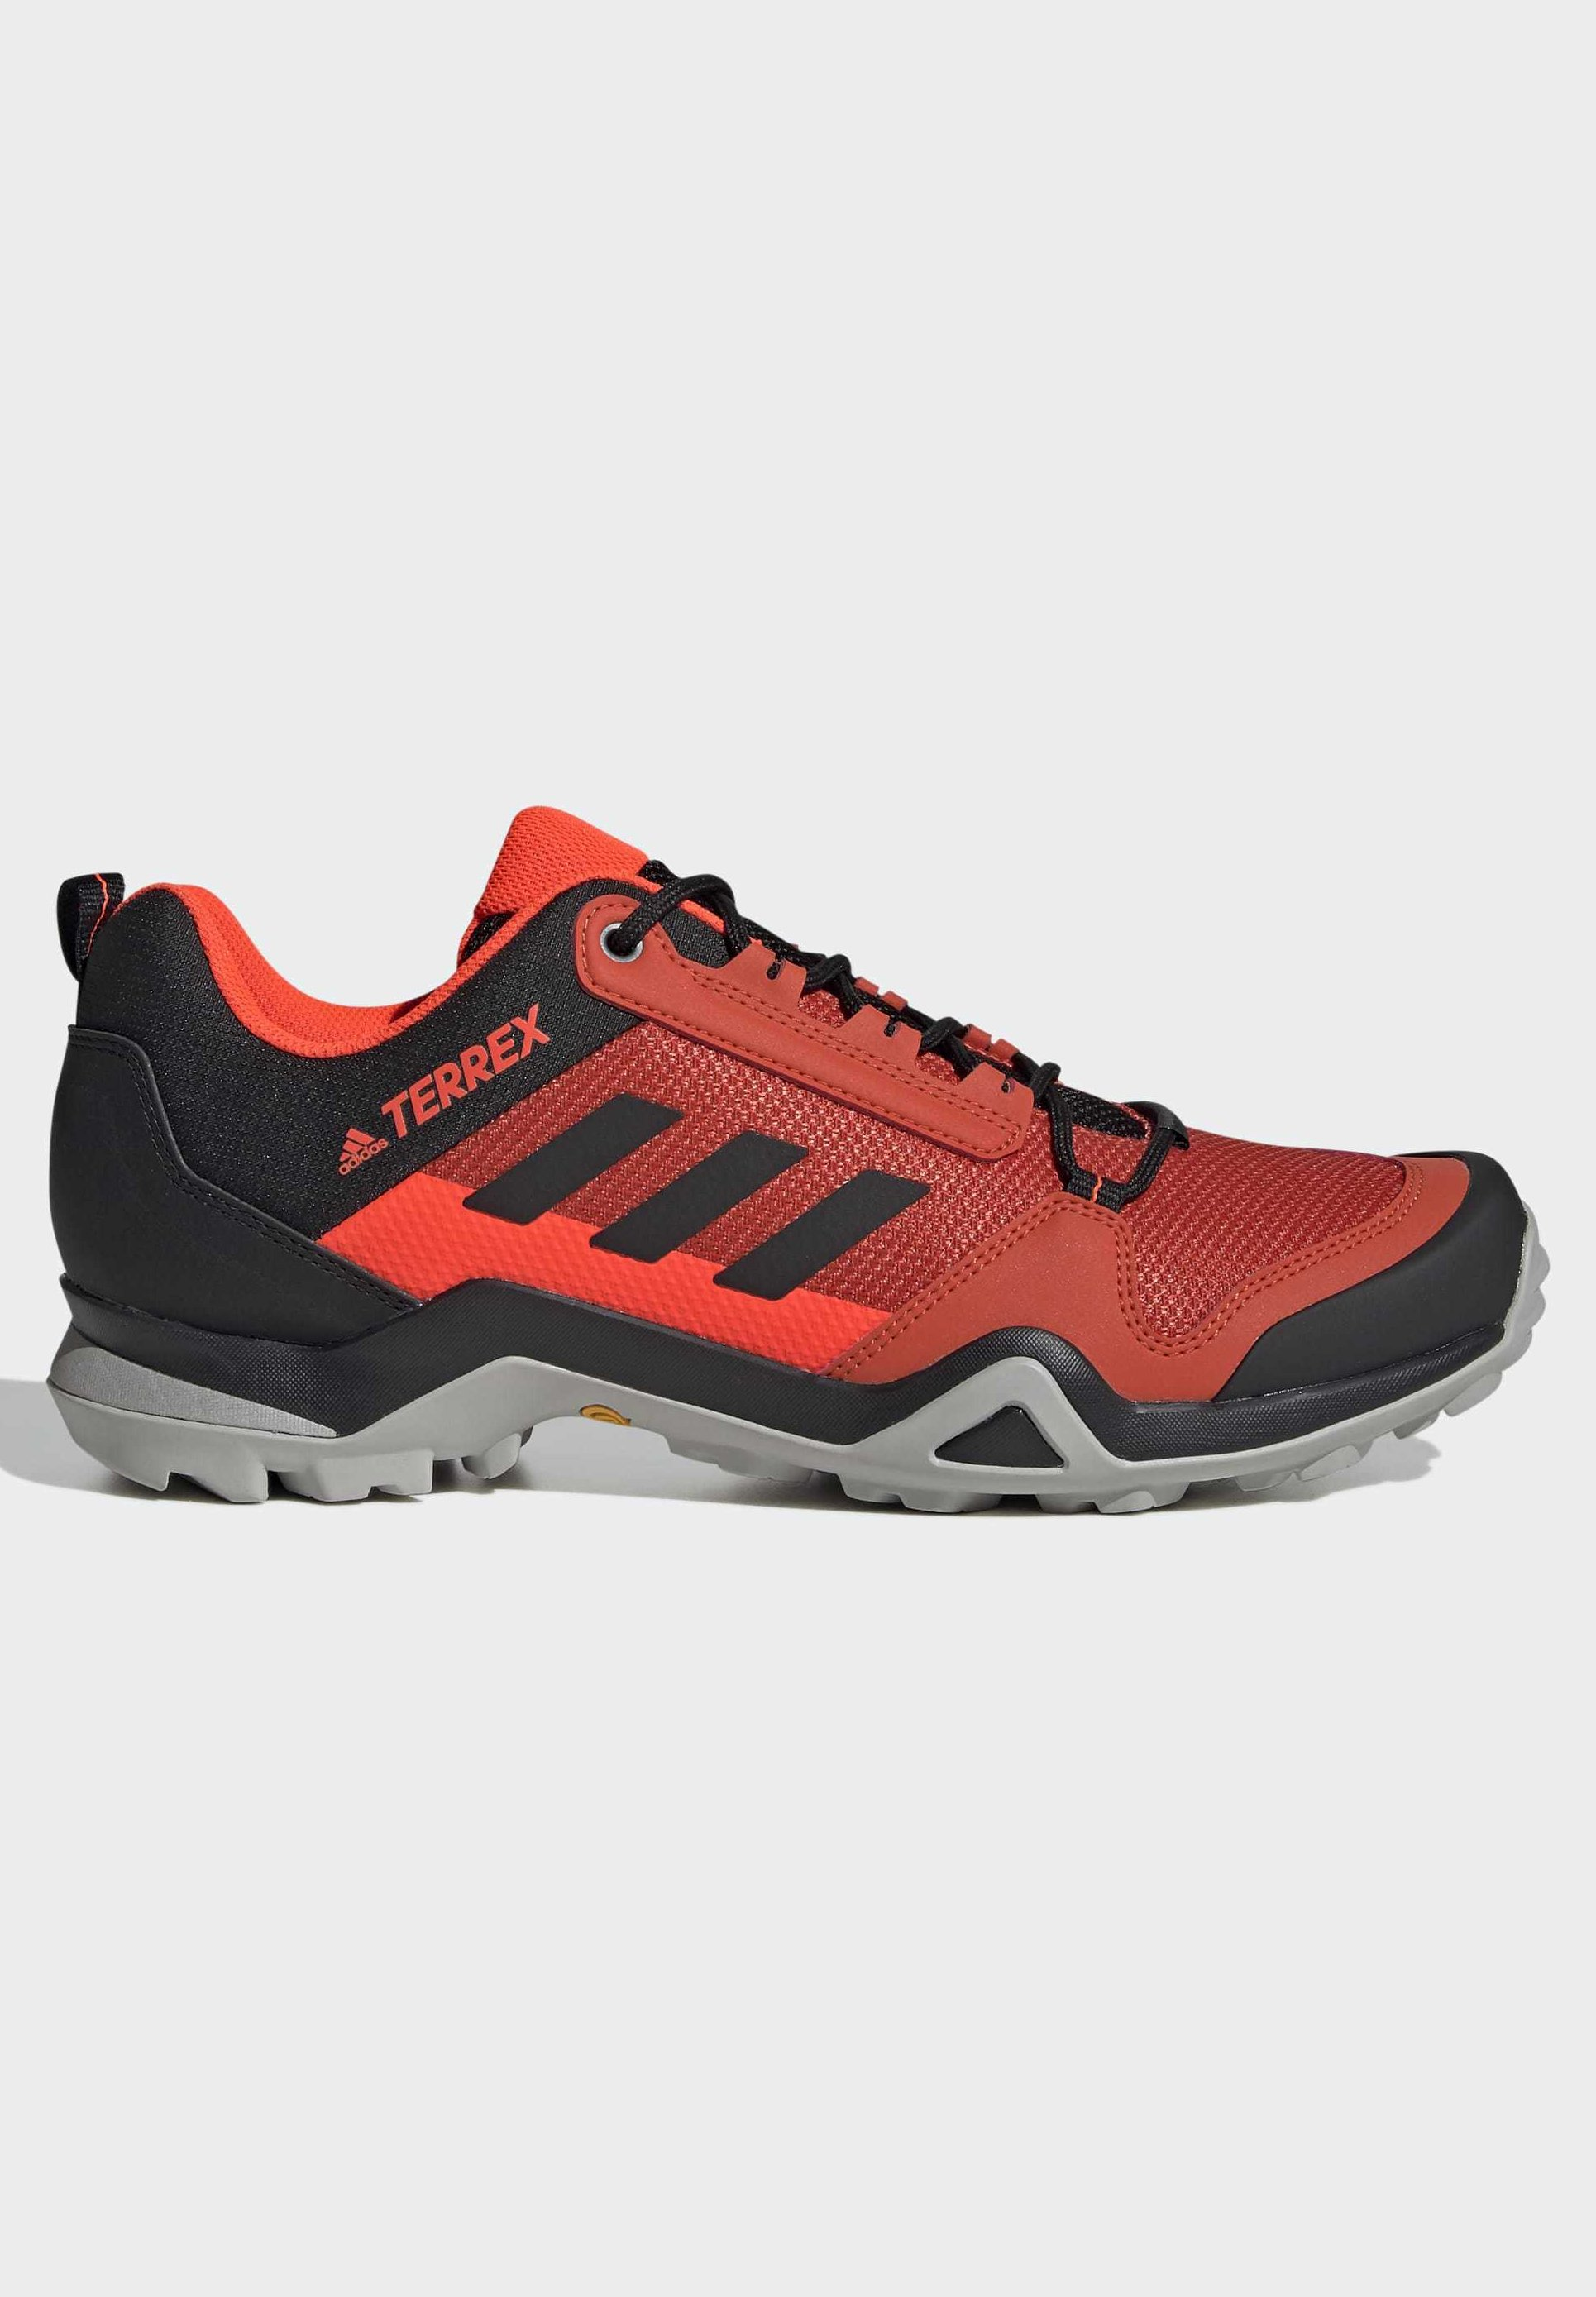 adidas Performance TERREX AX3 HIKING SHOES - Hikingschuh - orange - Herrenschuhe 6fZx8